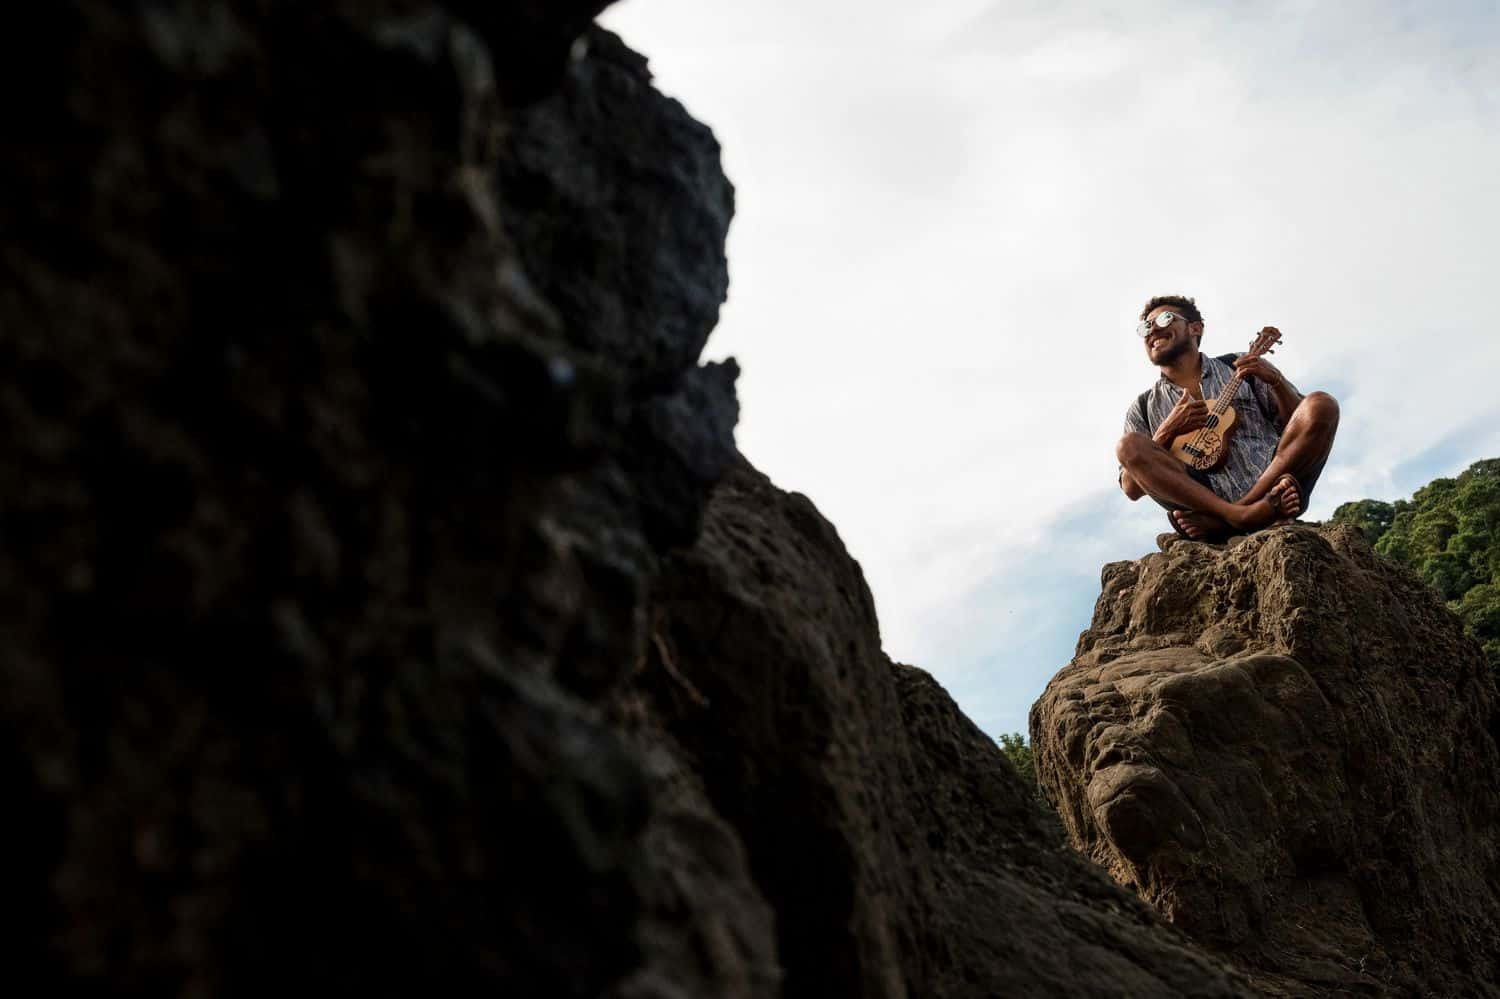 A man sitting on top of a large boulder while playing his ukulele